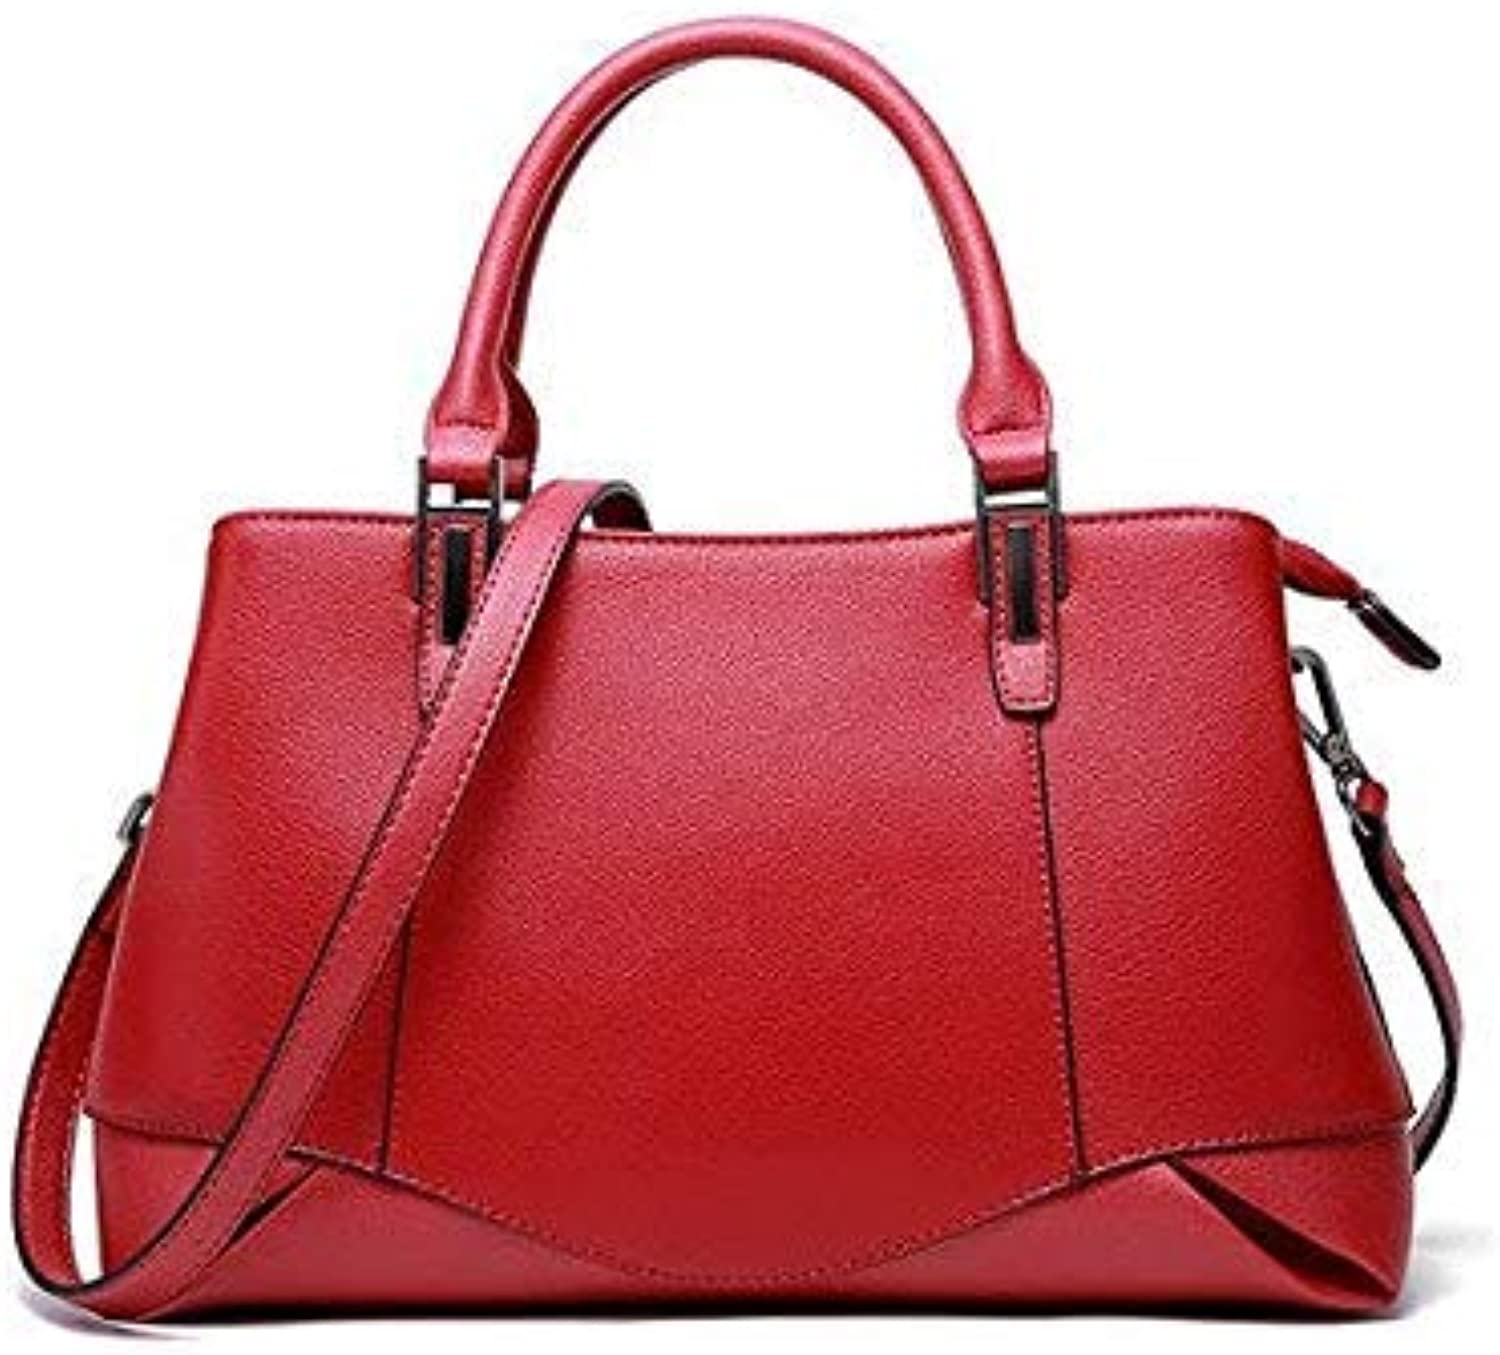 Bloomerang Bag Women Genuine Leather Handbags Genuine Leather Crossbody Bag for Women Natural Leather Tote Bag Ladies Hand Bags color Burgundy 32x13x18cm